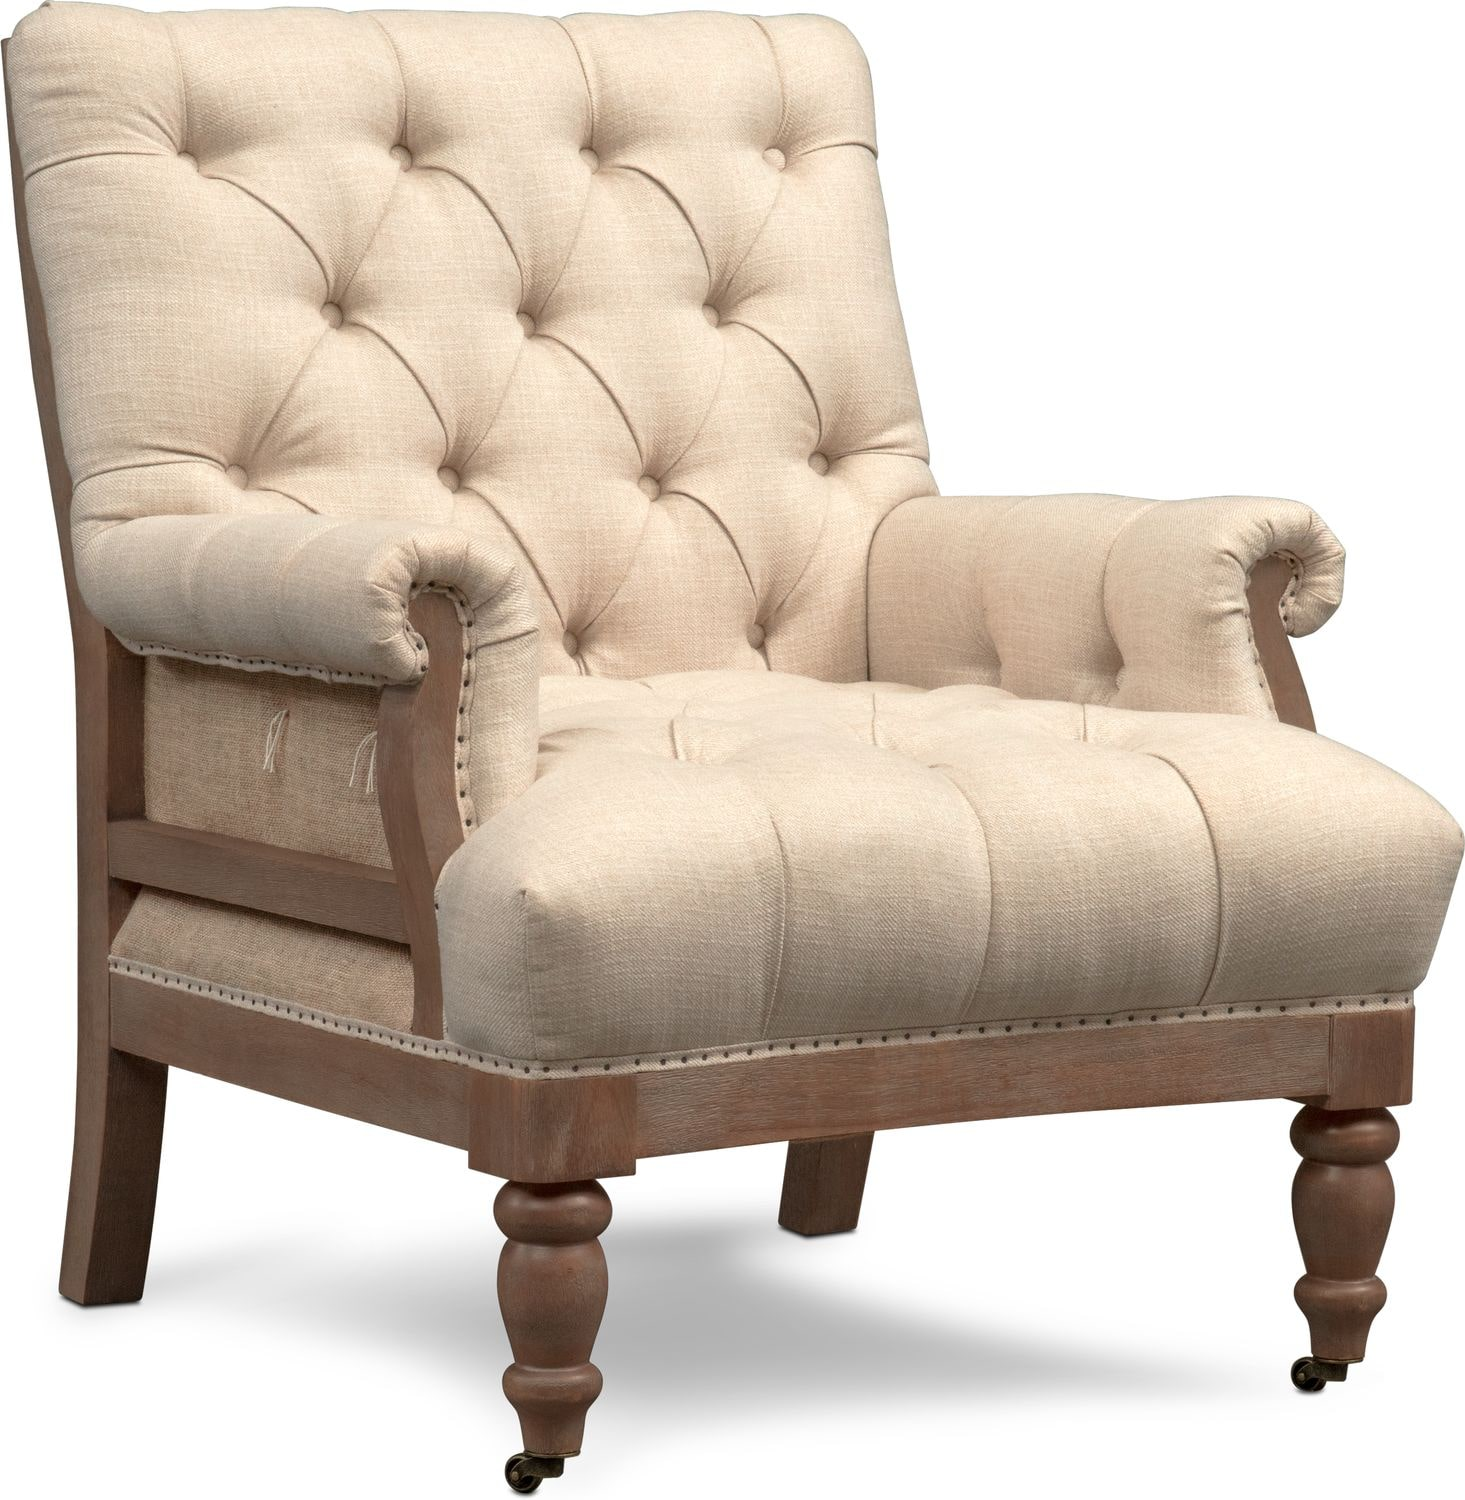 Accent Chair Living Room Bridget Accent Chair Cream